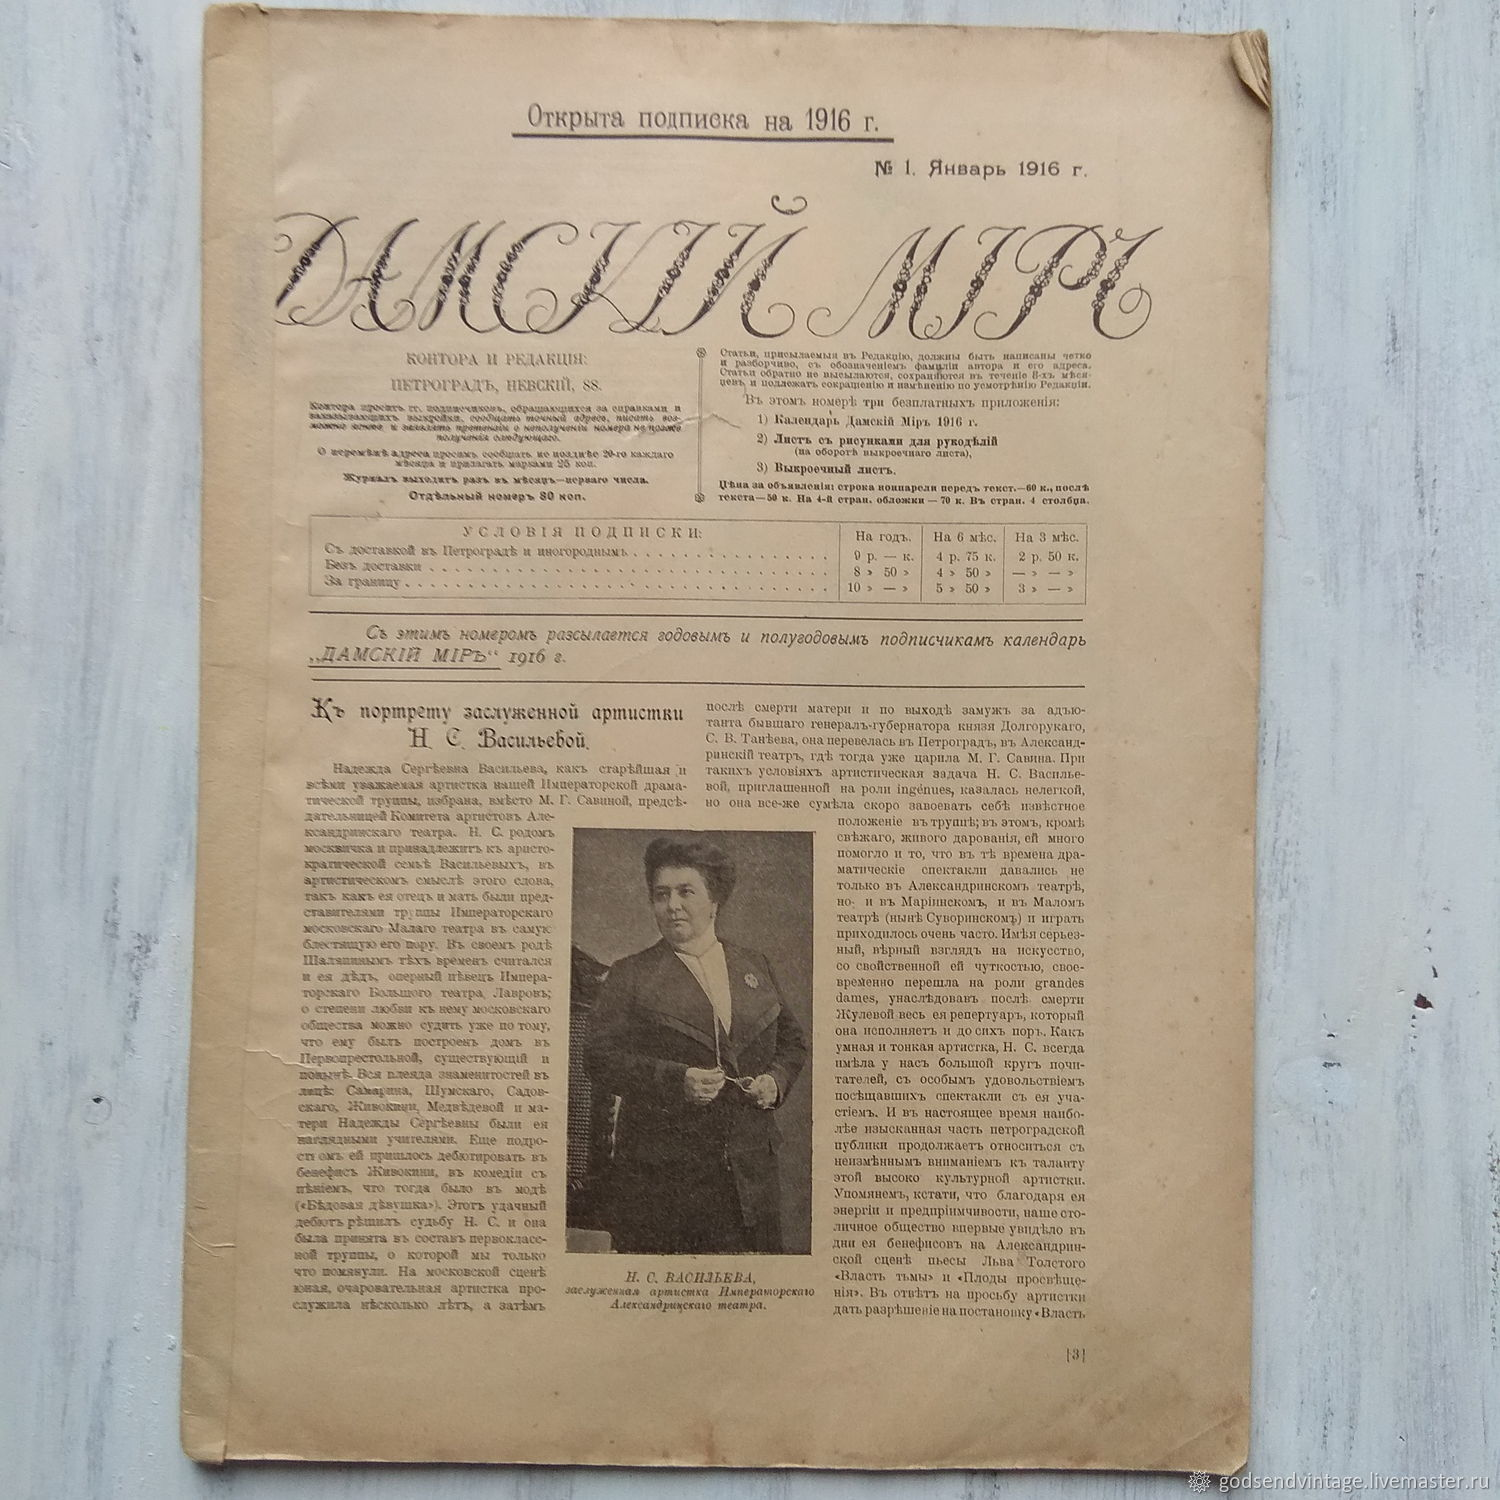 Magazine Ladies ' world, № 1 1916, without application – shop online on  Livemaster with shipping - HUP9TCOM | St  Petersburg